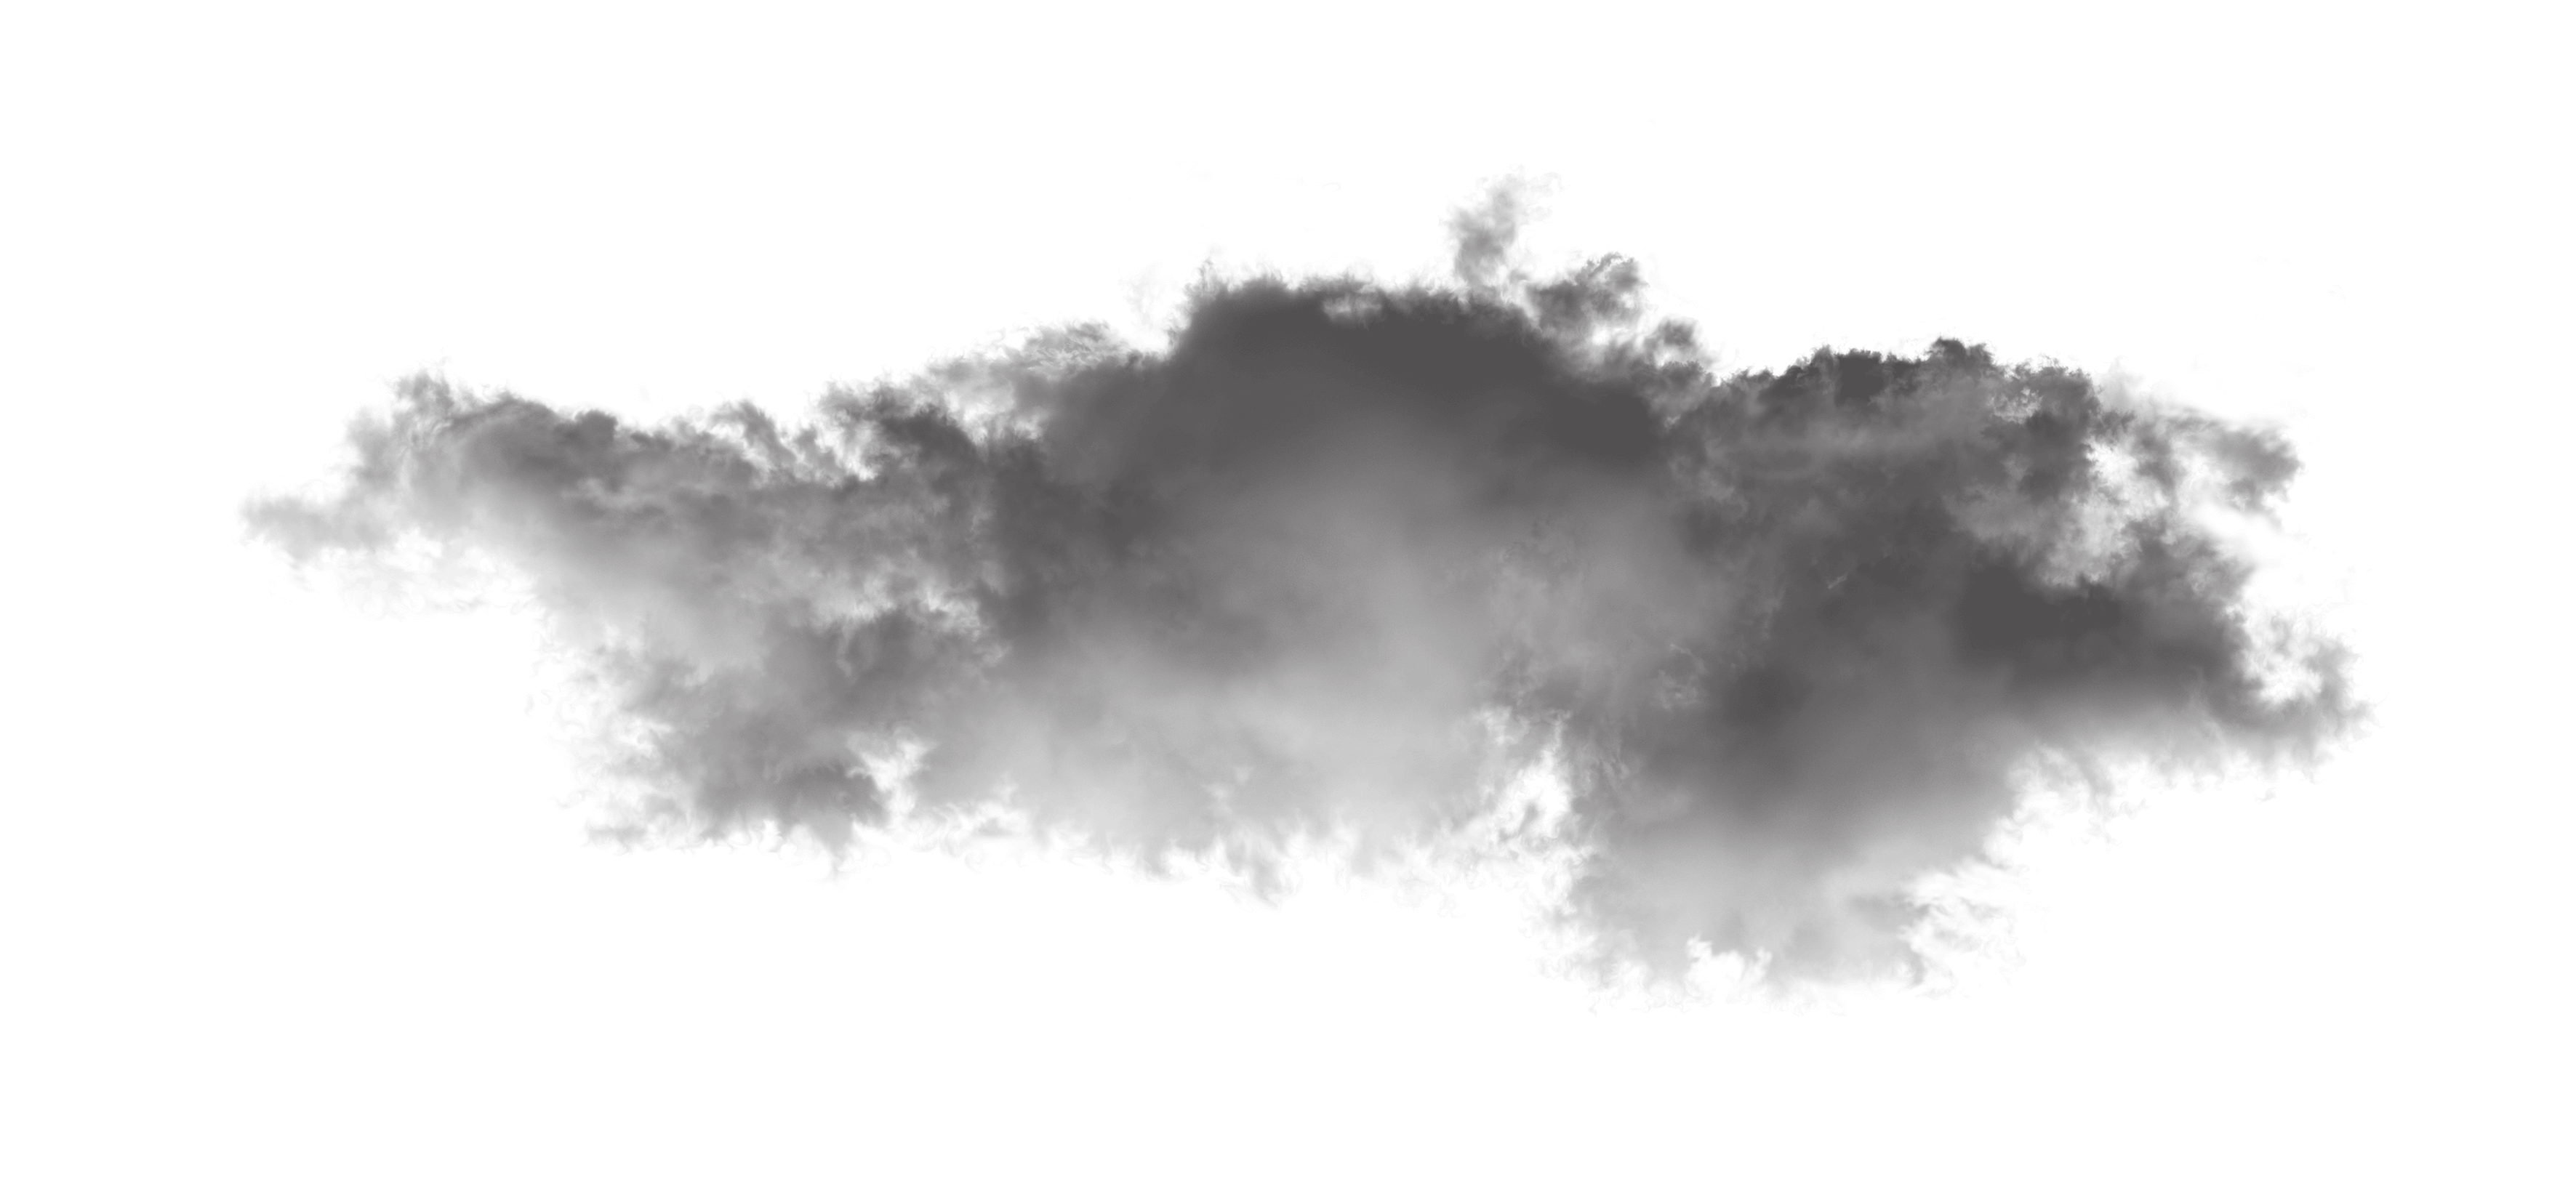 Dust cloud png. Black clouds transprent free